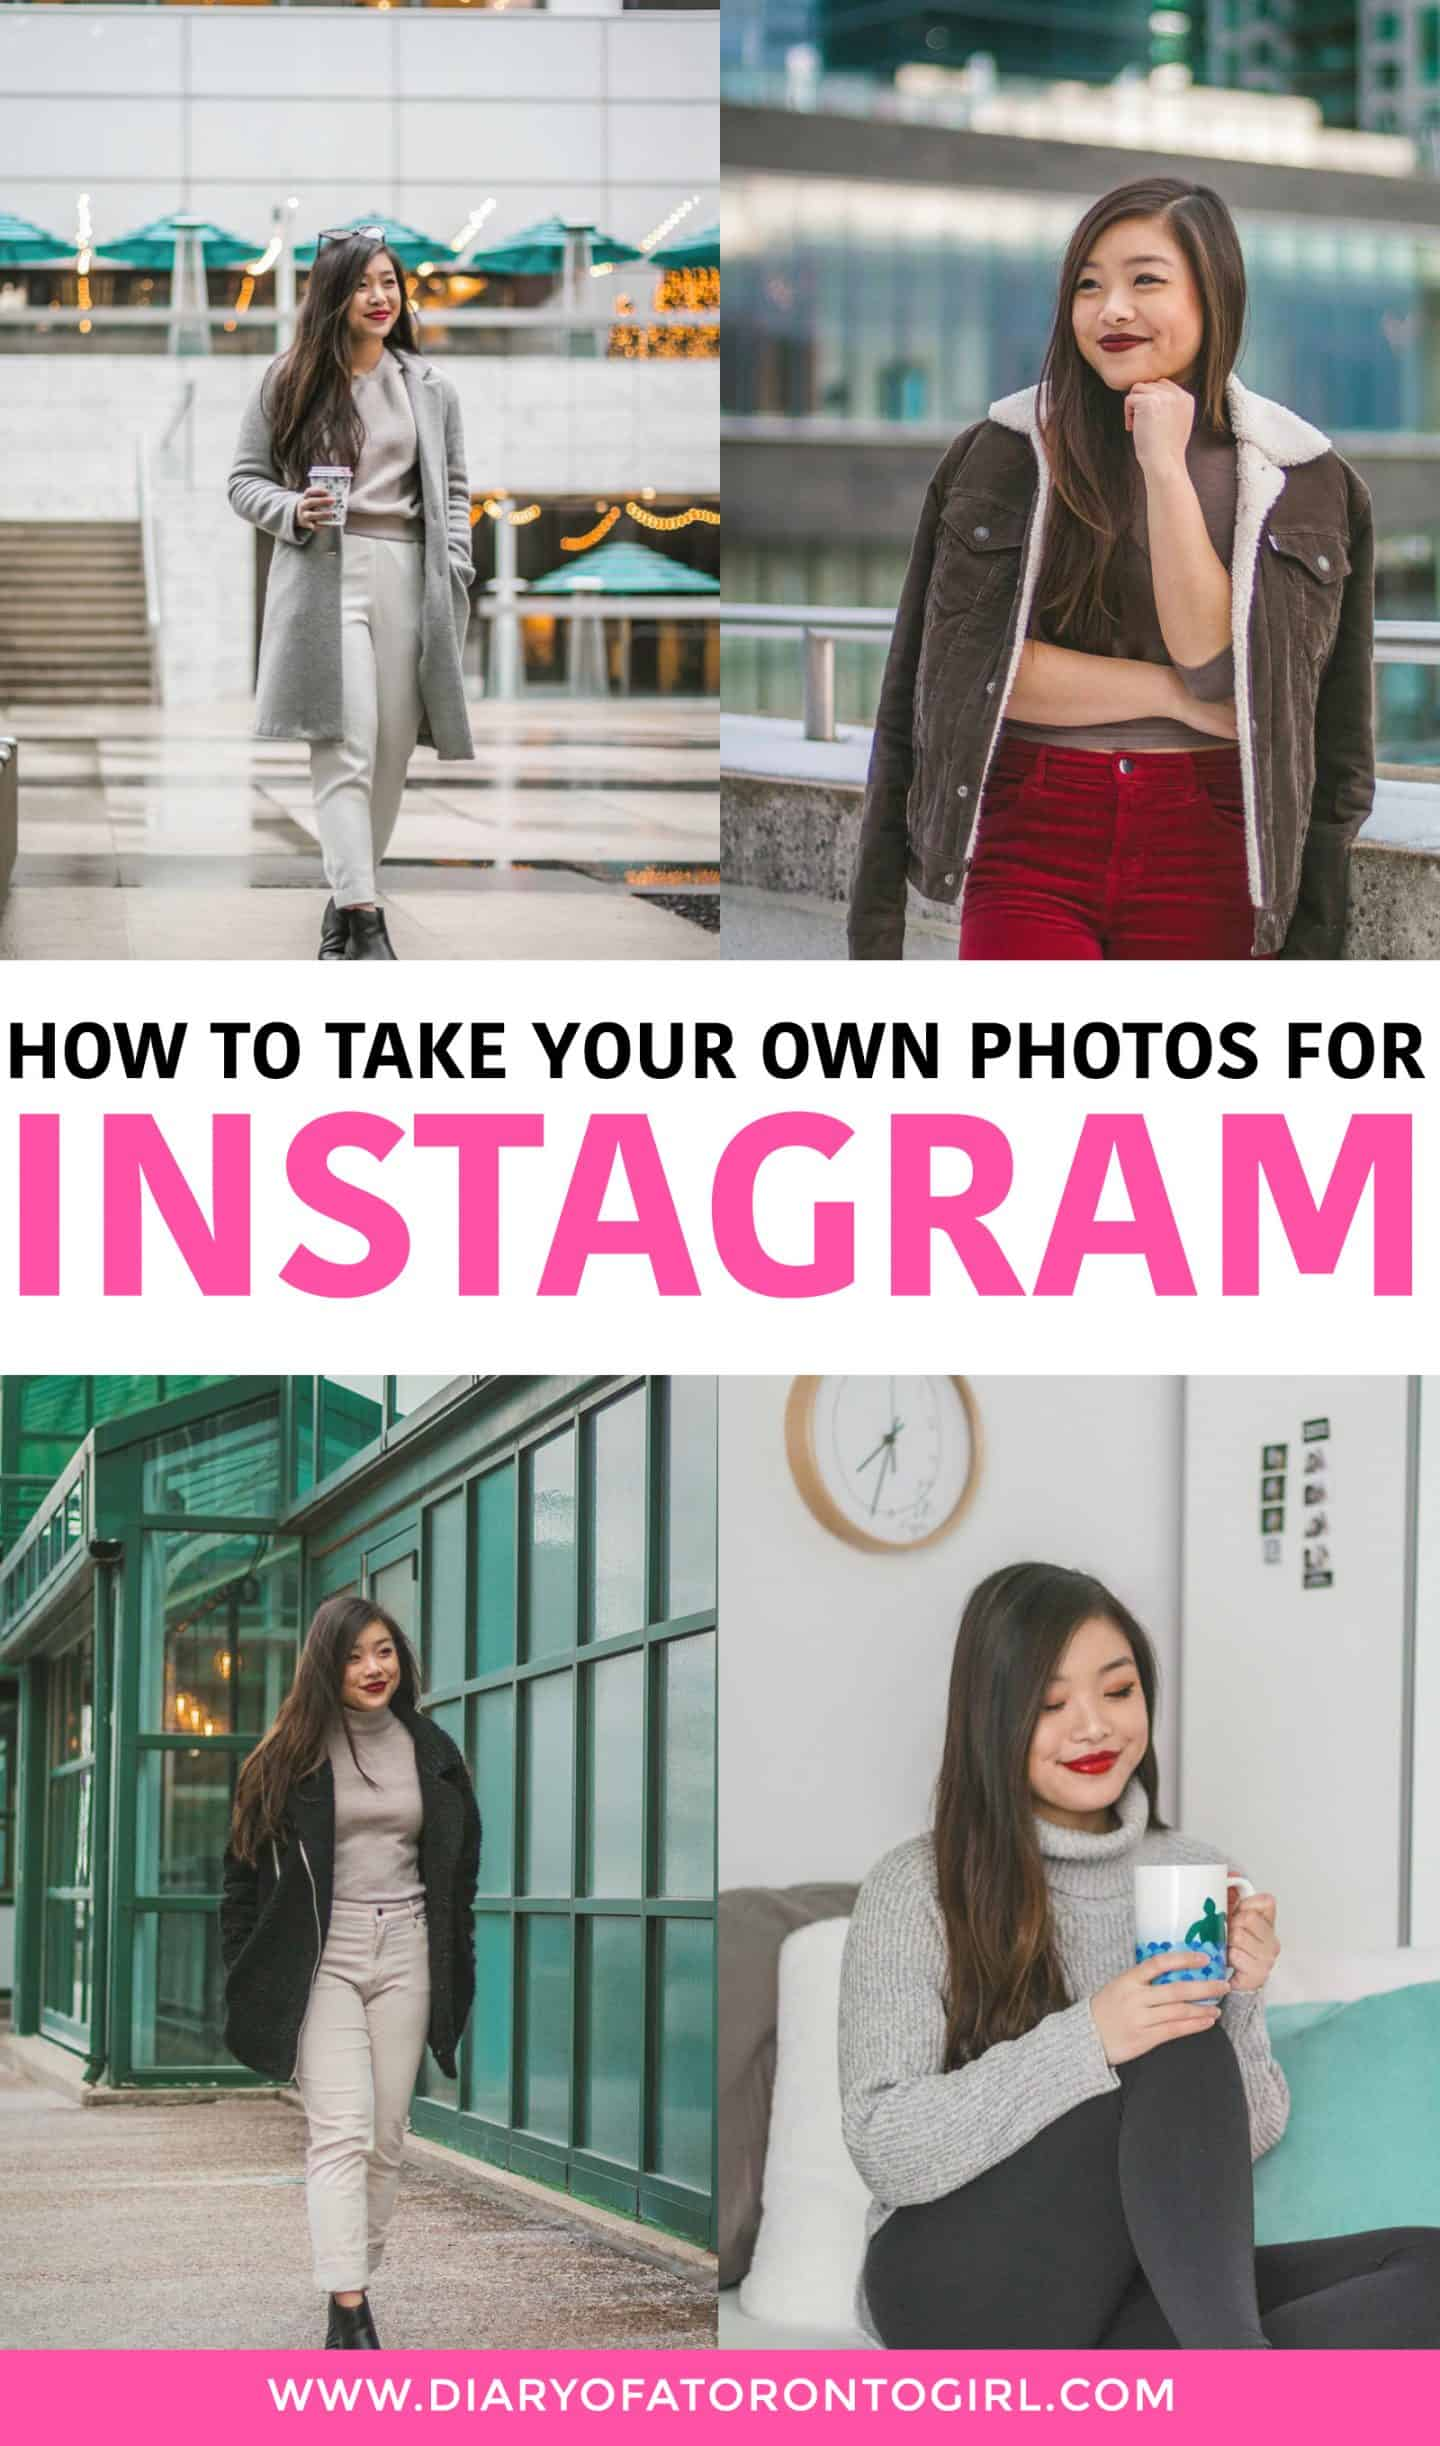 You can't always rely on an Instagram husband. These are my tips on how to take your own Instagram photos (and good ones at that) by yourself!